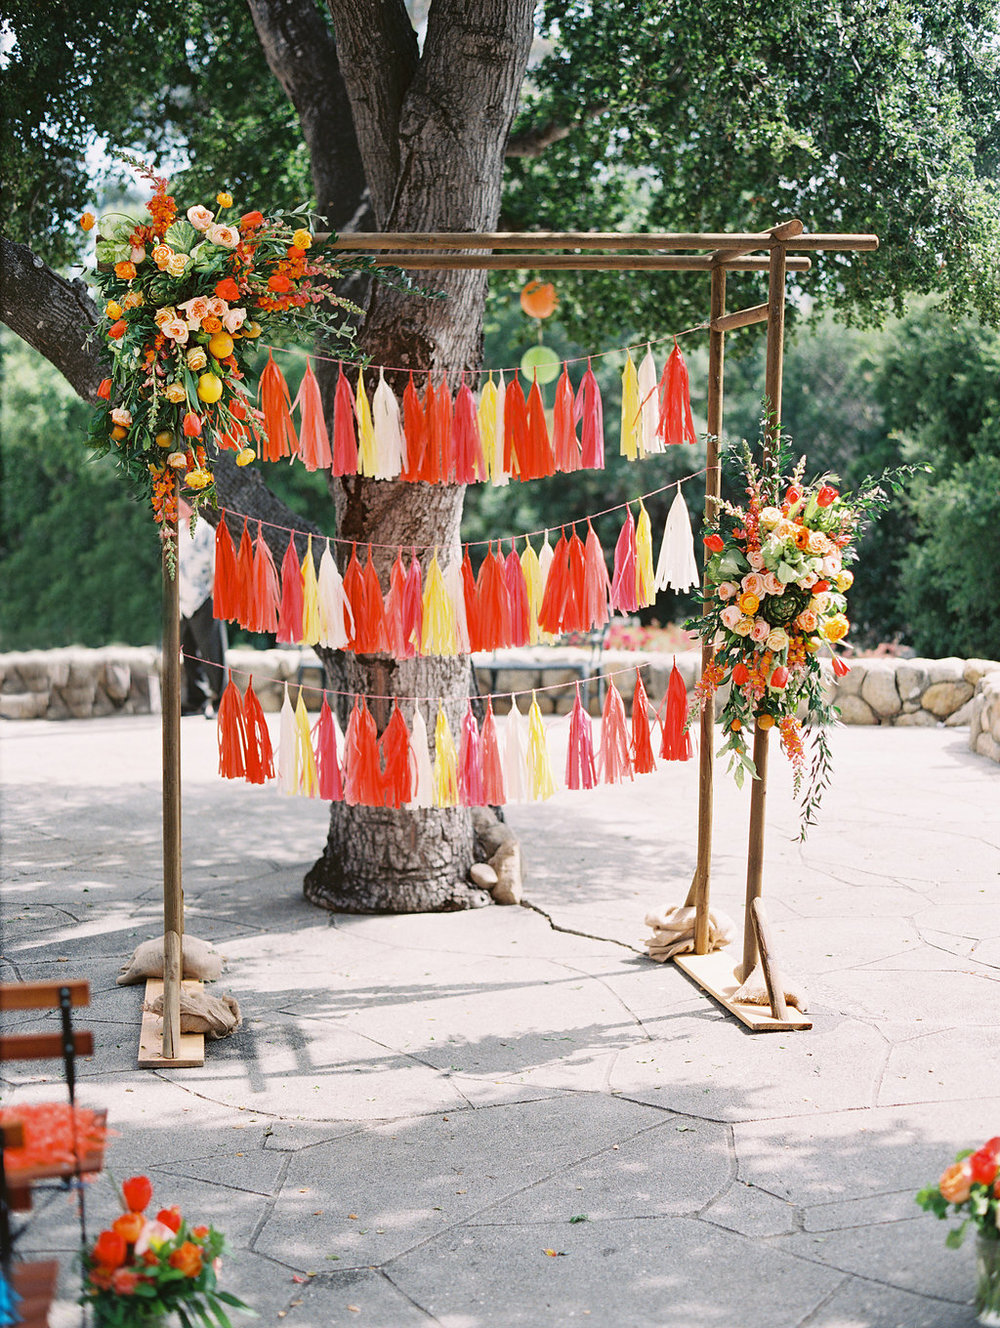 santabarbarawedding.com | Photo: Lavender and Twine | Sunset Color Wedding Ideas